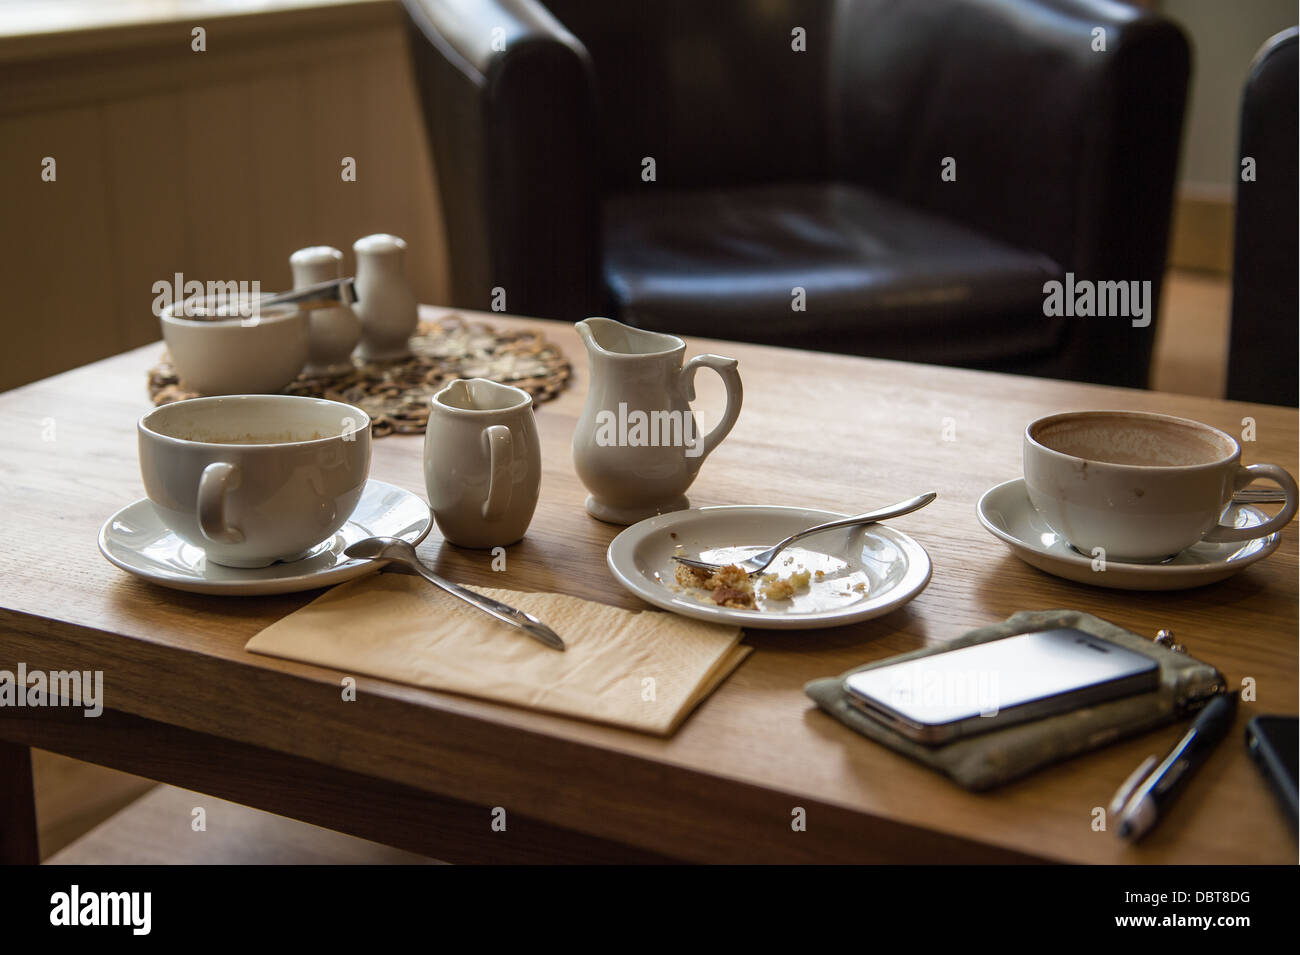 Coffee Shop Cups And Plates On A Table Stock Photo